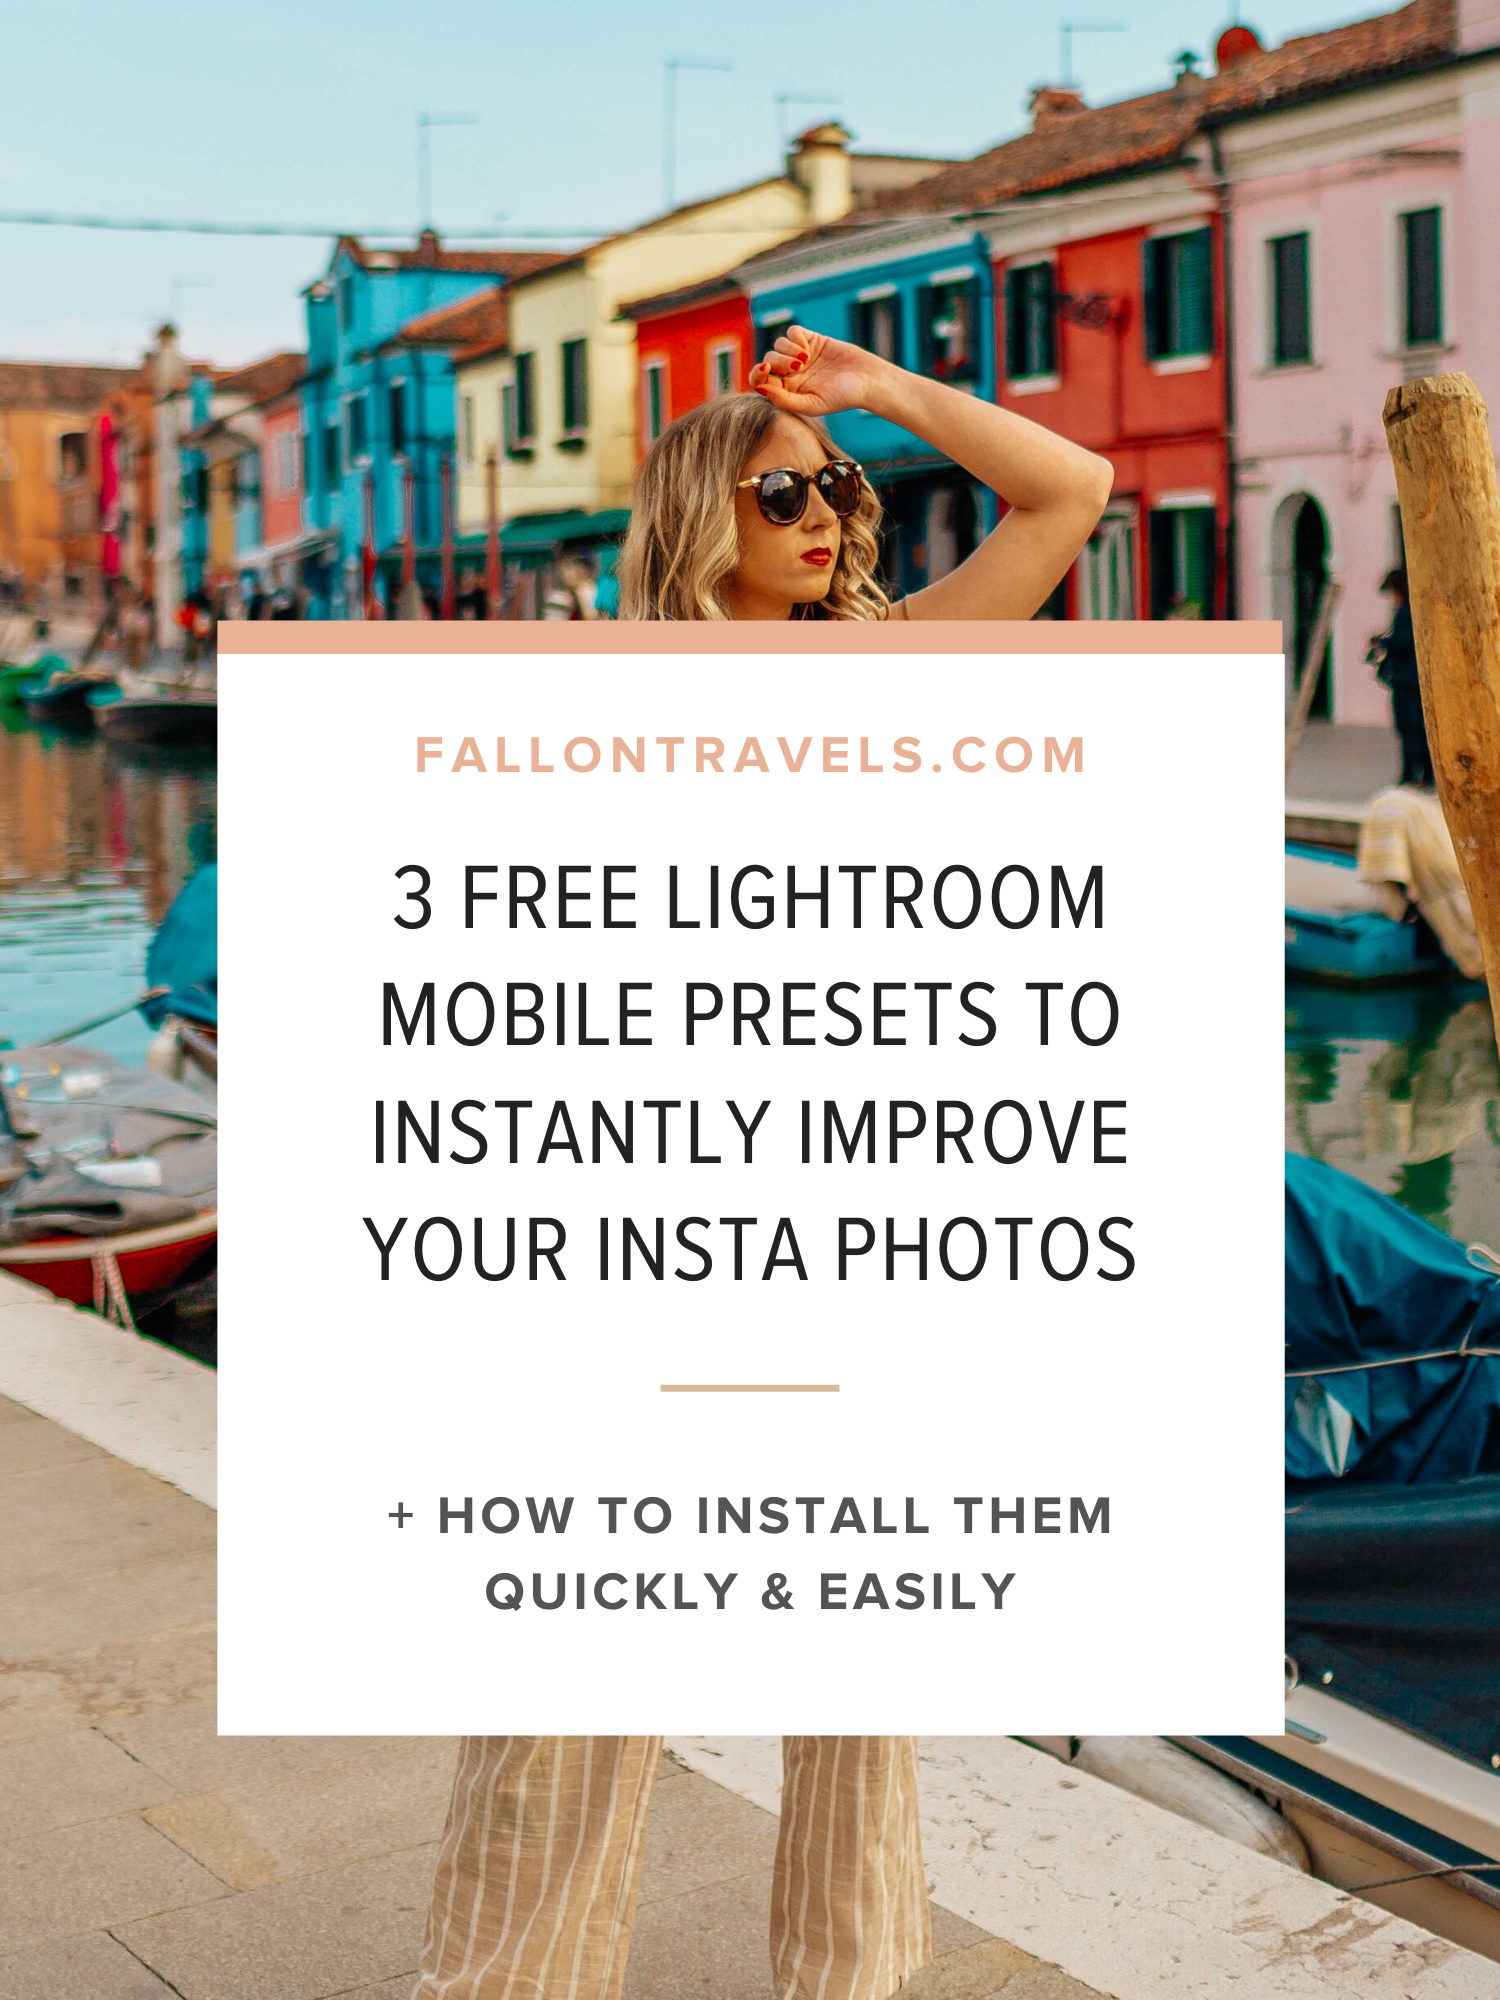 How to add presets in lightroom